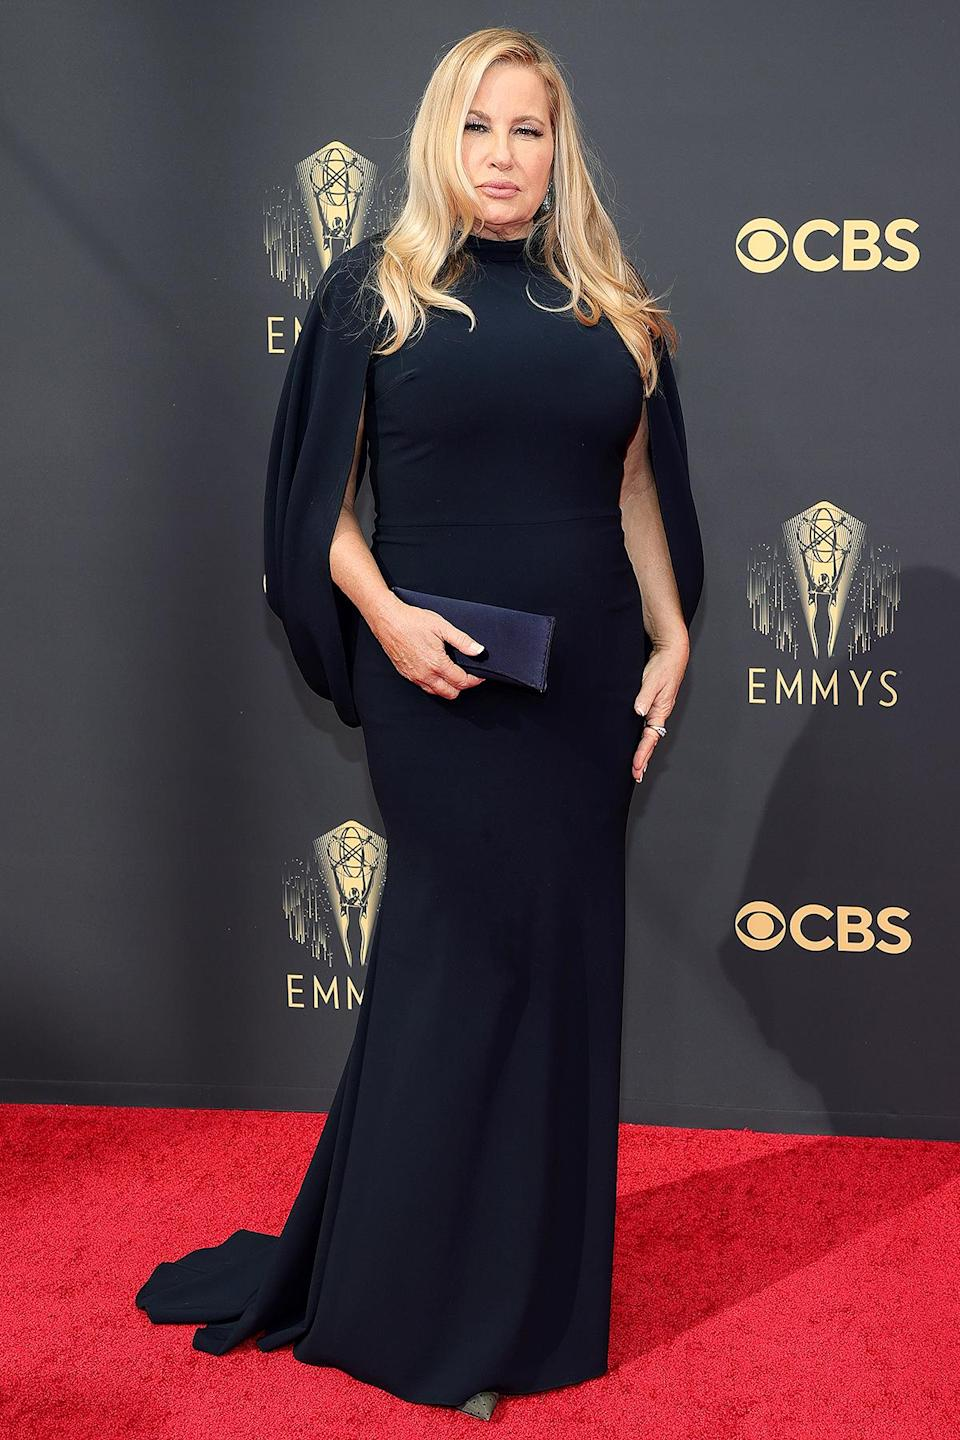 """<p><strong>""""Besides these nominees being talented actors, they have something else in common. What is it? I want you to know, nominees, that you all have overcome the incredible handicap in this business of being men. Bravo gentlemen, wherever you are!""""</strong></p> <p>— Jennifer Coolidge, getting a laugh out of the audience while introducing the nominees for outstanding lead actor in a comedy series </p>"""